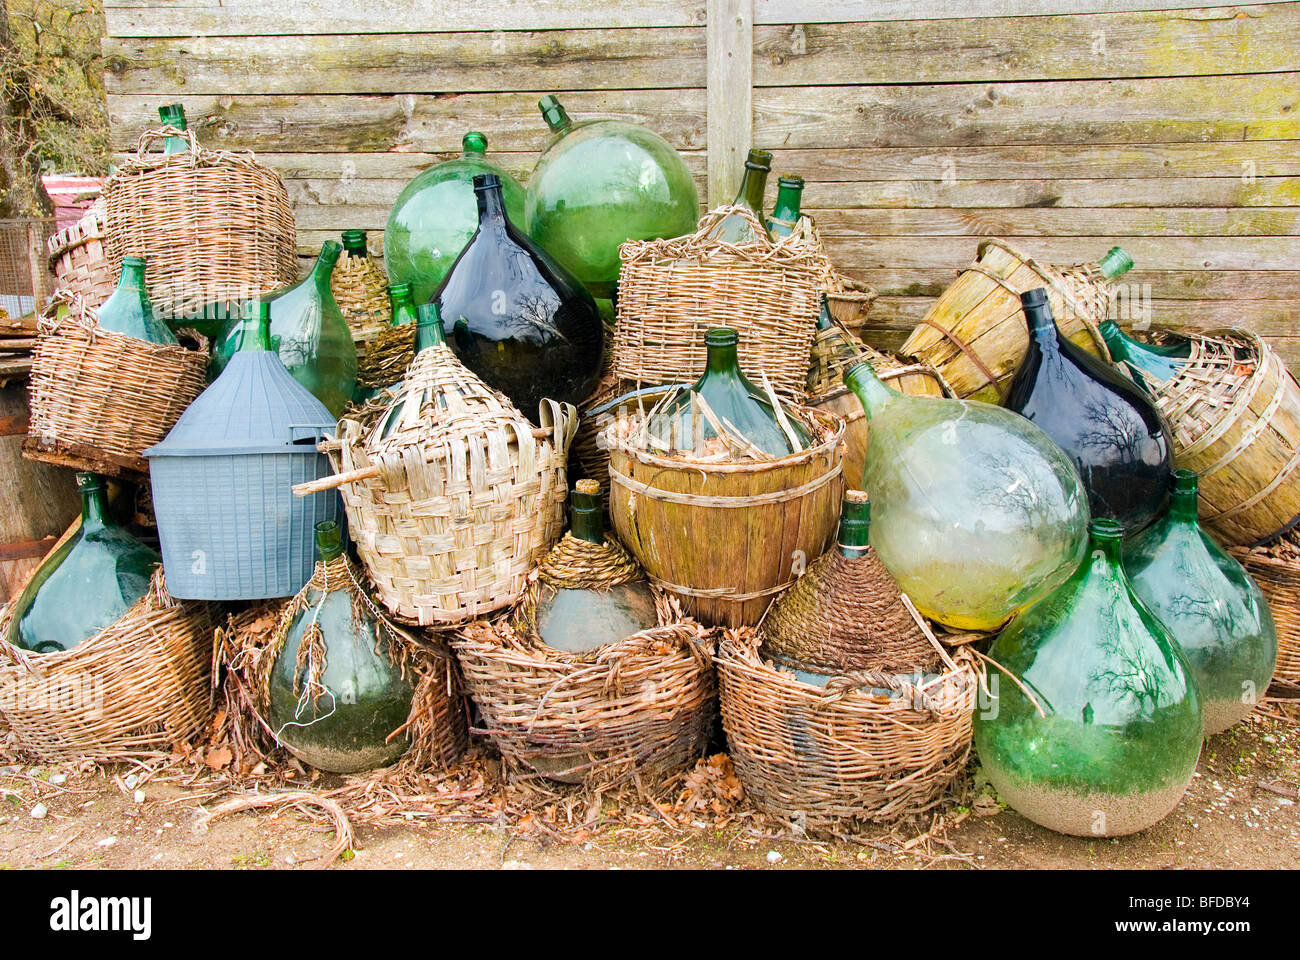 Discarded green demijohns with basket bases - Stock Image